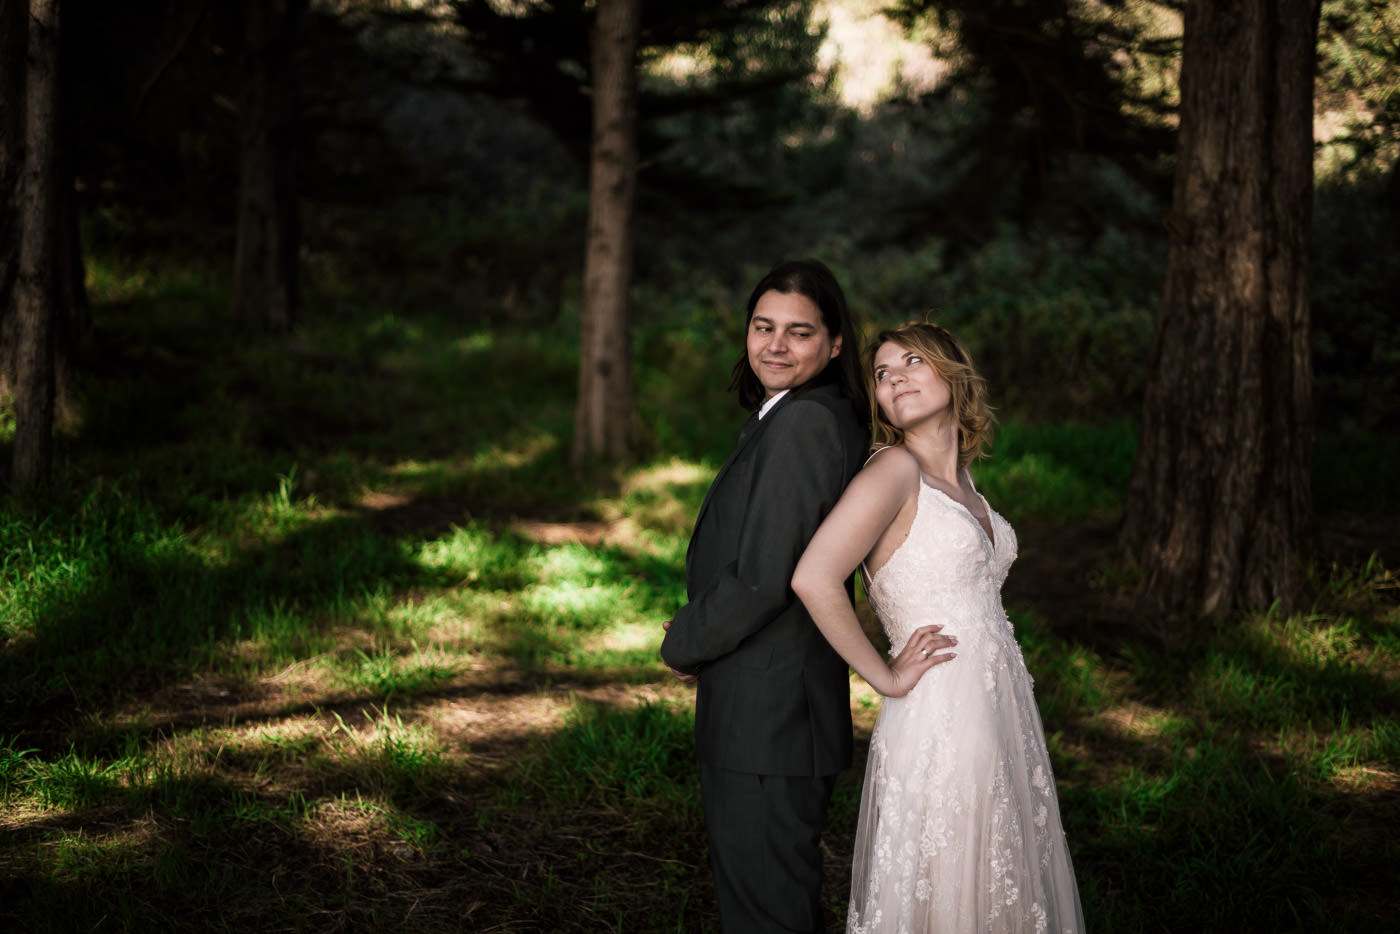 Newly weds stand back to back under the trees for their elopement photographer.